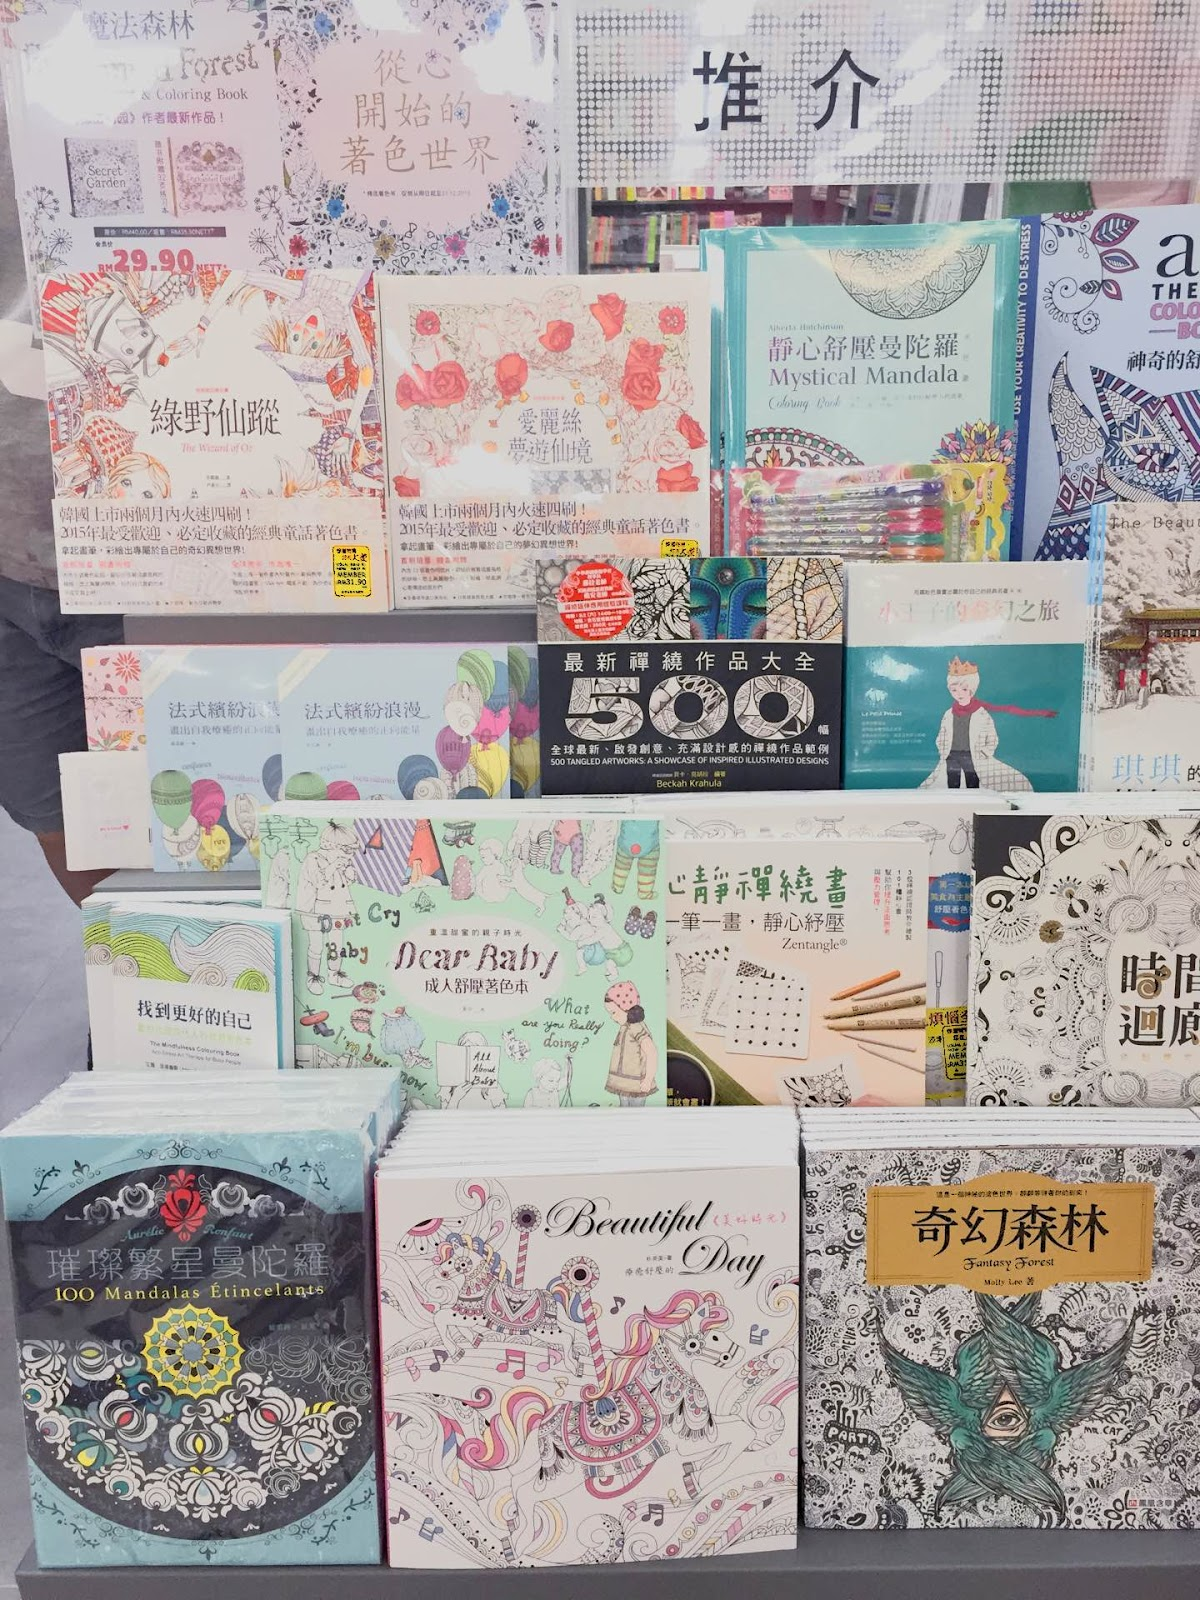 Grown up colouring books kmart - After You Have Found The Purpose Of You Venturing Into The Adult Colouring Book Determine What Are The Colouring Medium You Would Like To Use Coloured